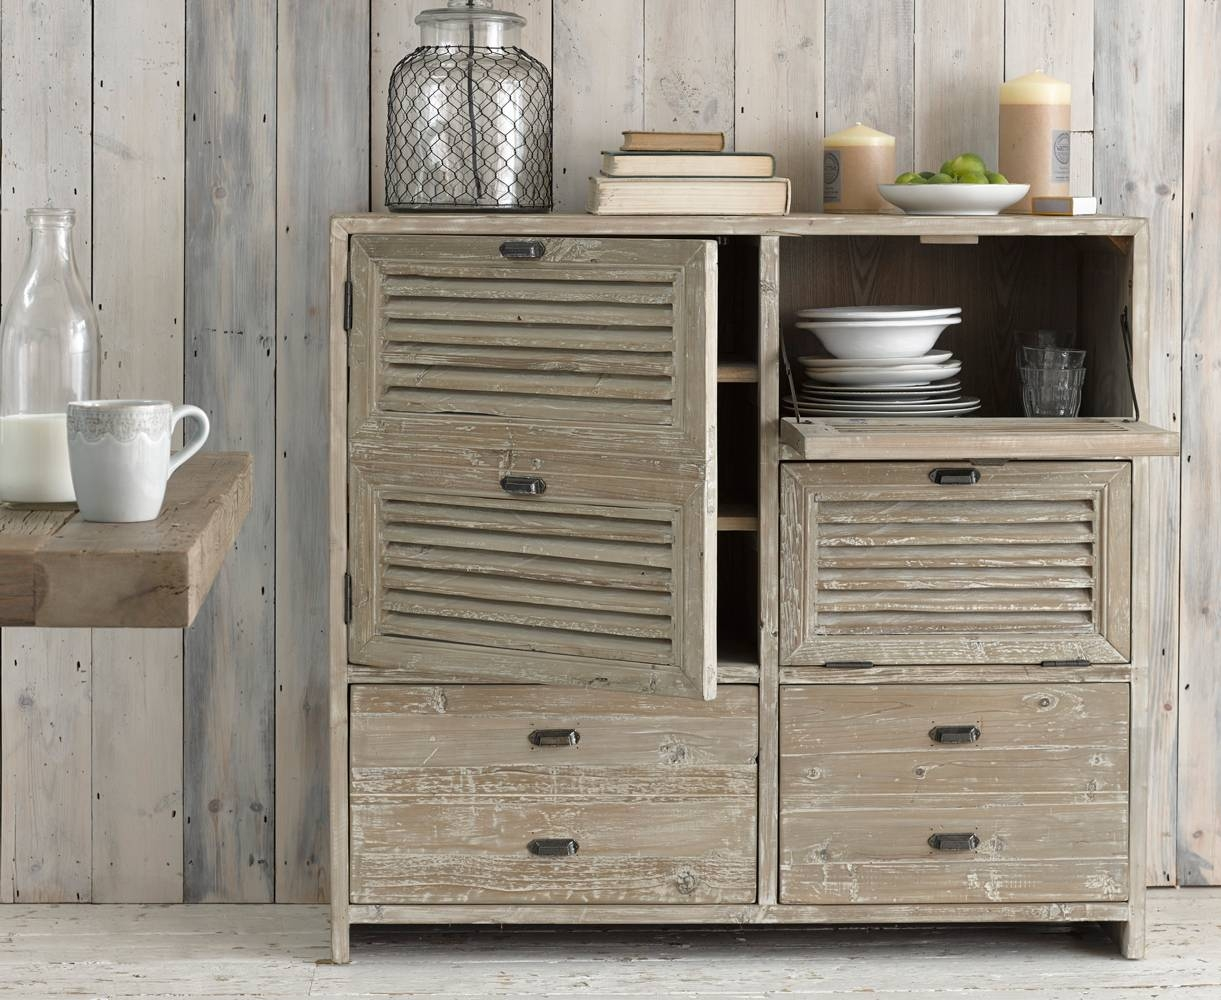 French Style Sideboard | Sucre | Loaf Regarding Sideboards With Drawers (View 8 of 15)